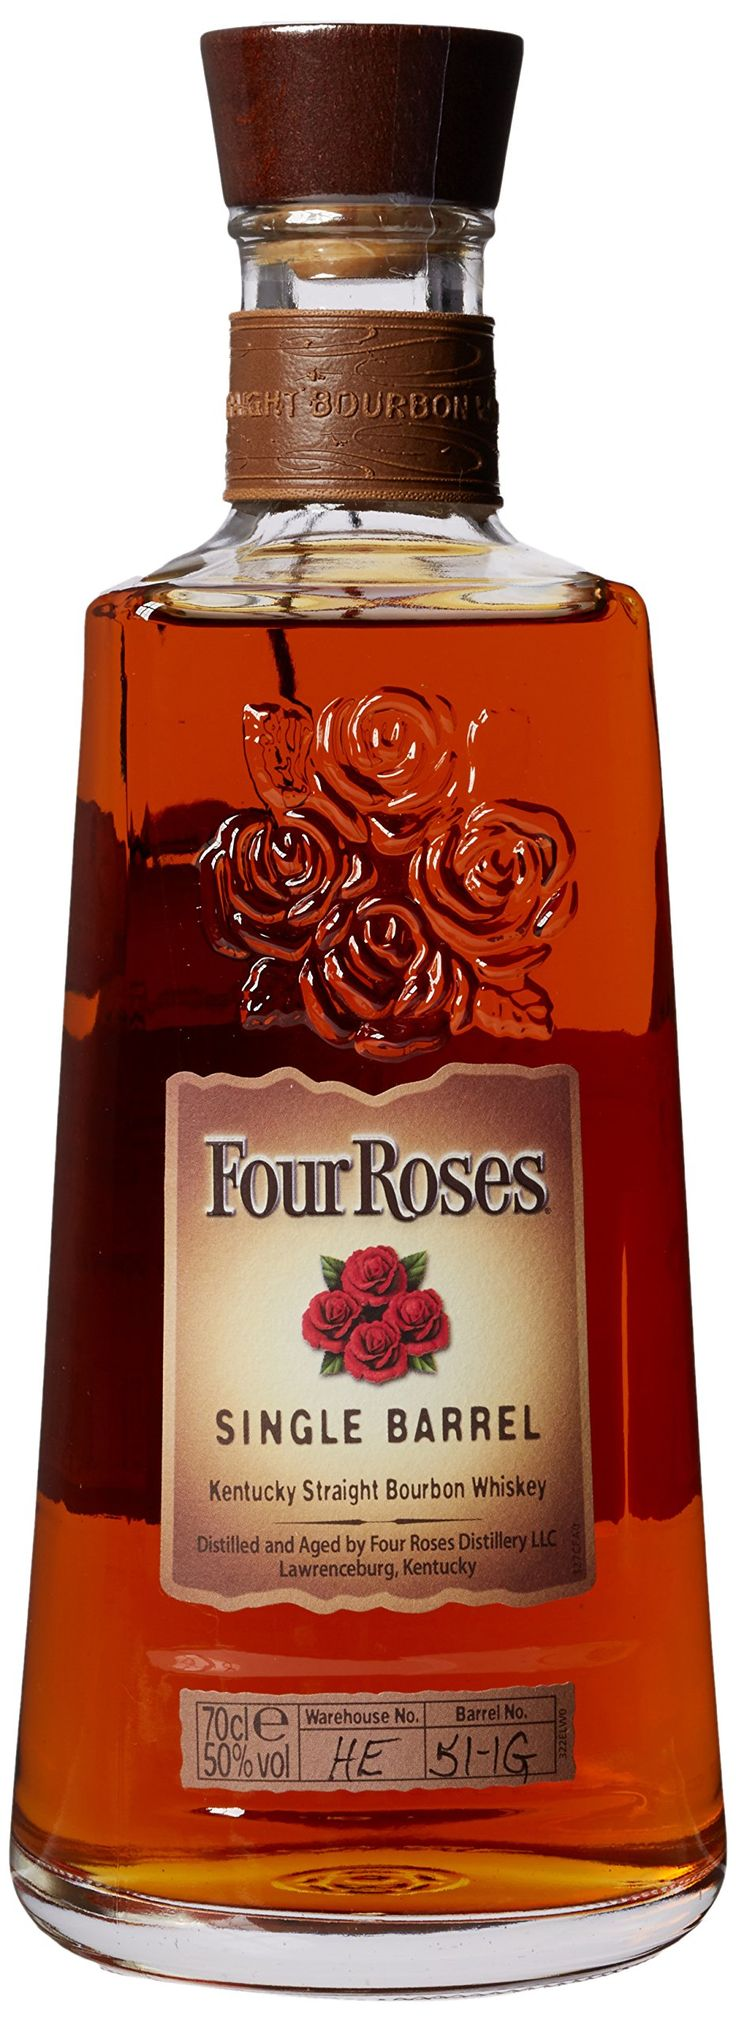 Four Roses Single Barrel Kentucky Straight Bourbon Whiskey 70 cl